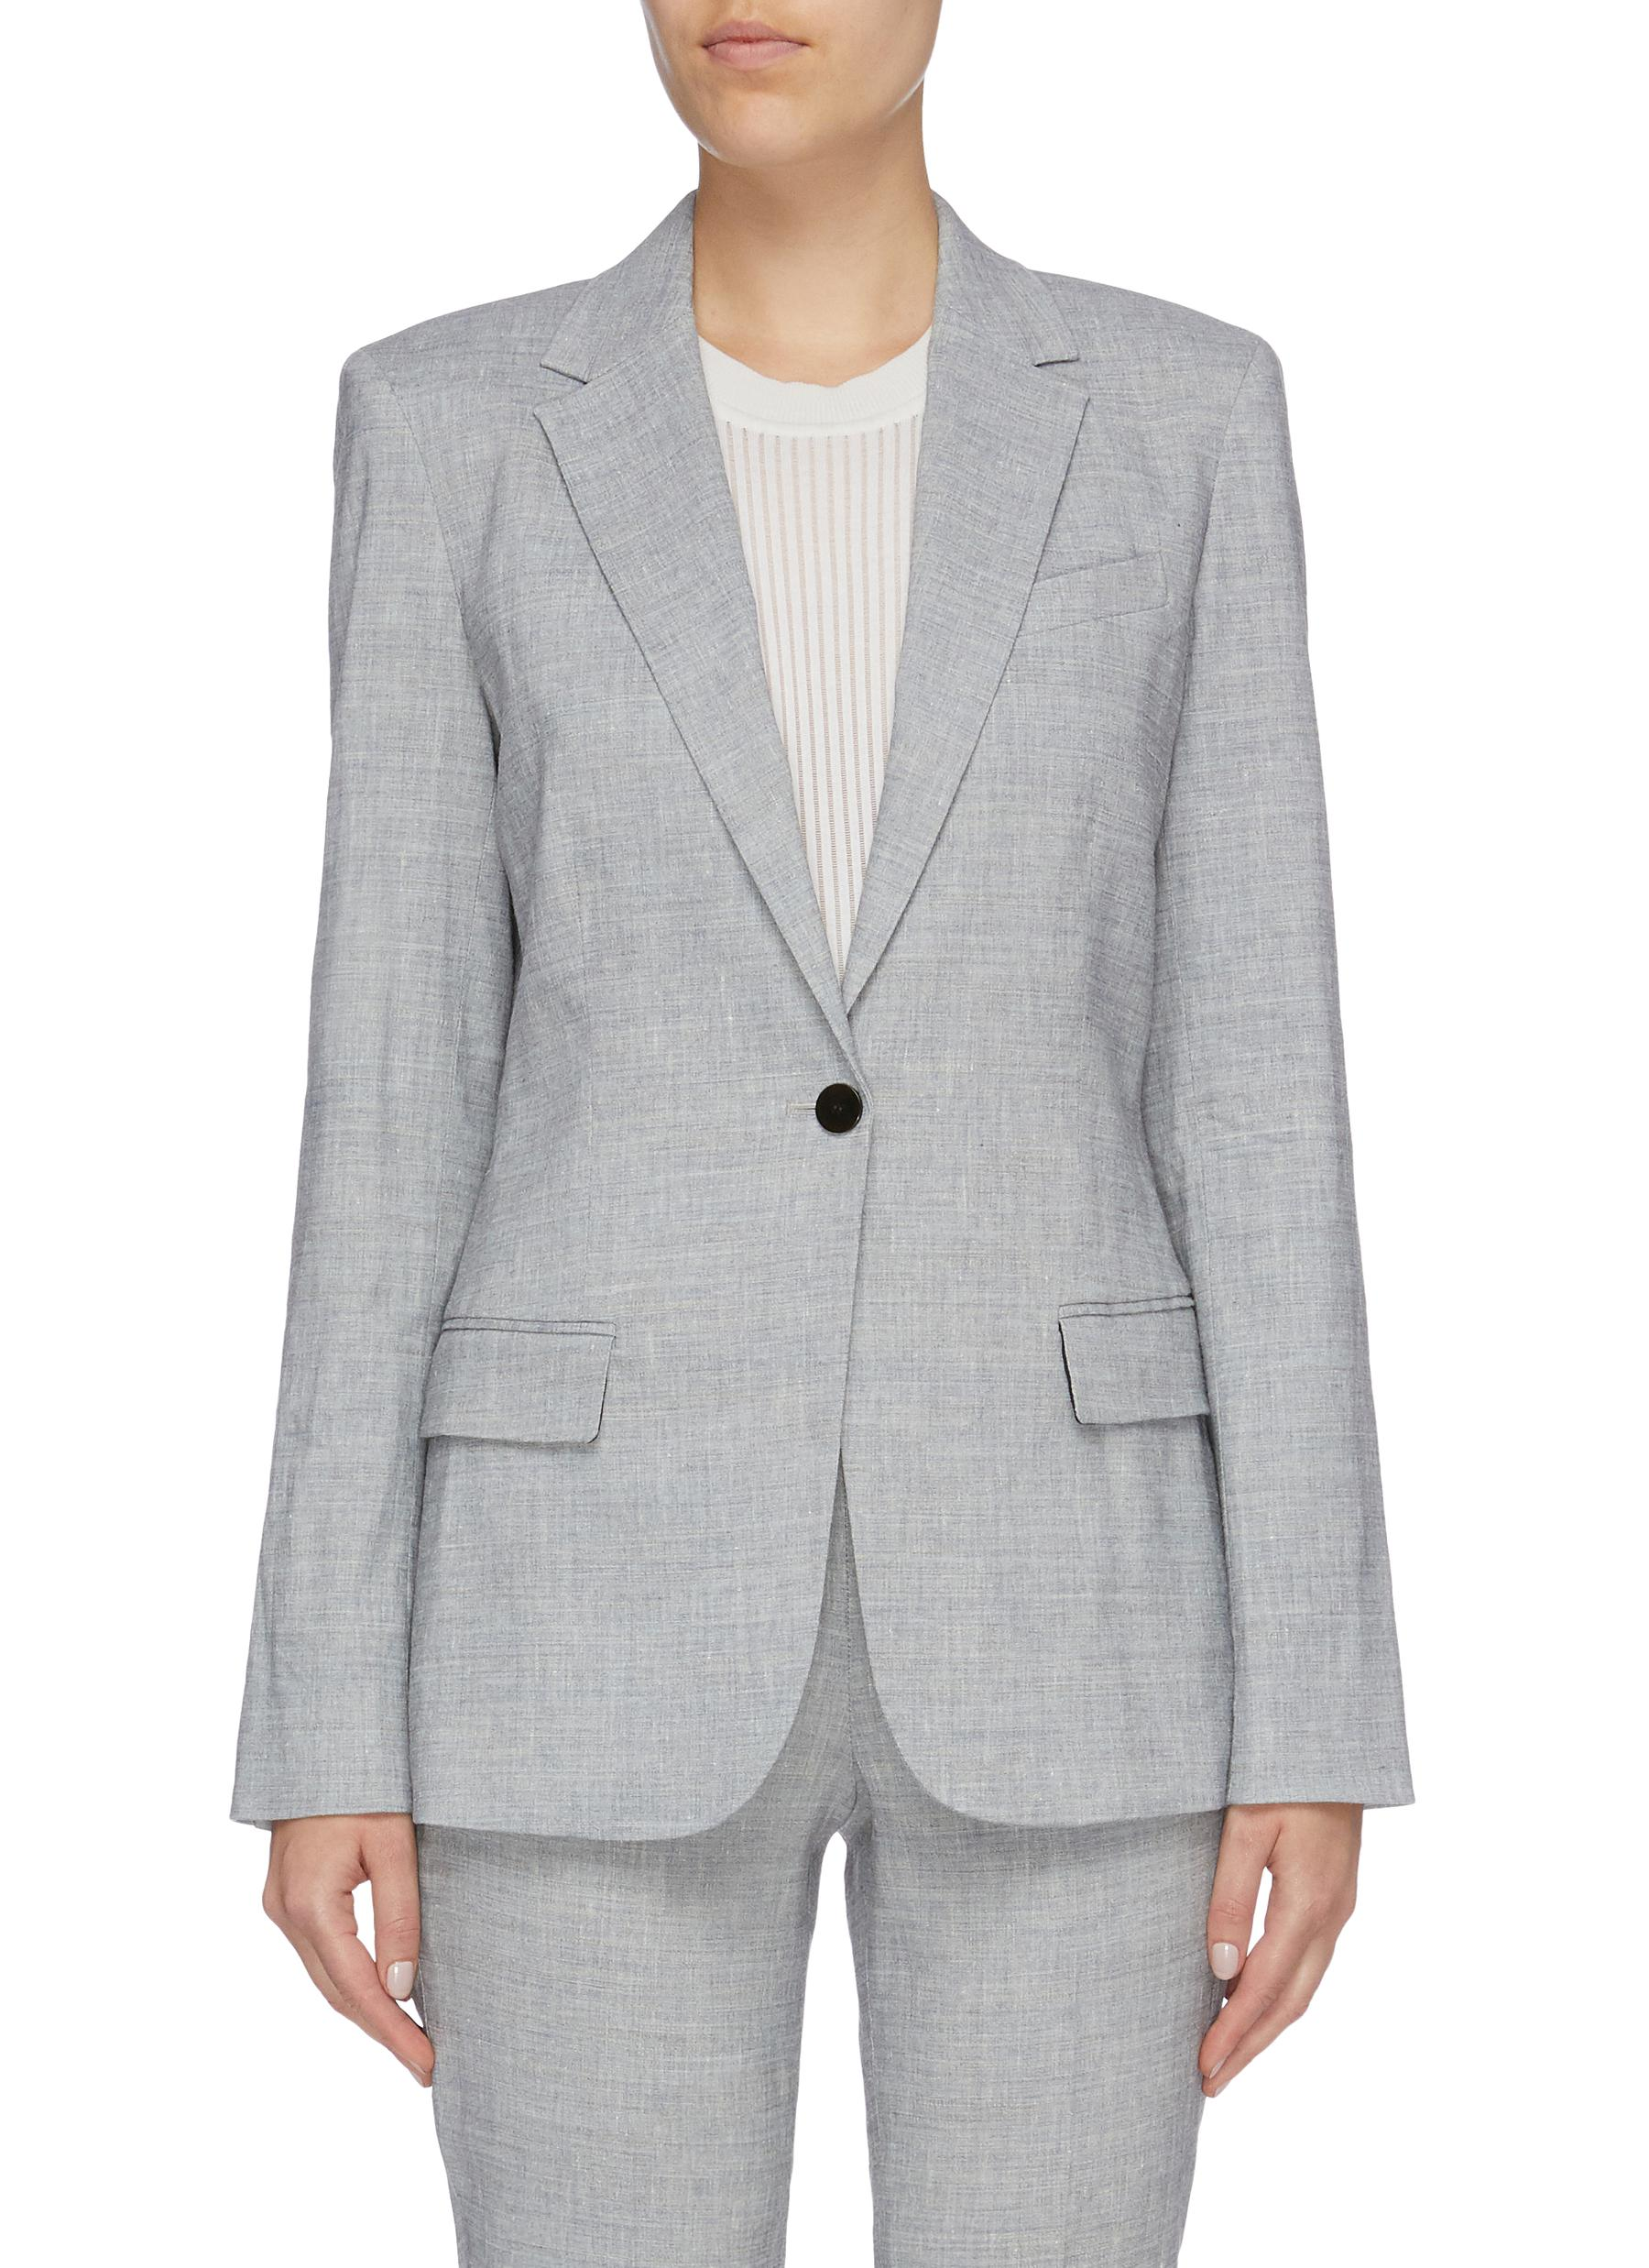 Staple notched lapel linen blend blazer by Theory